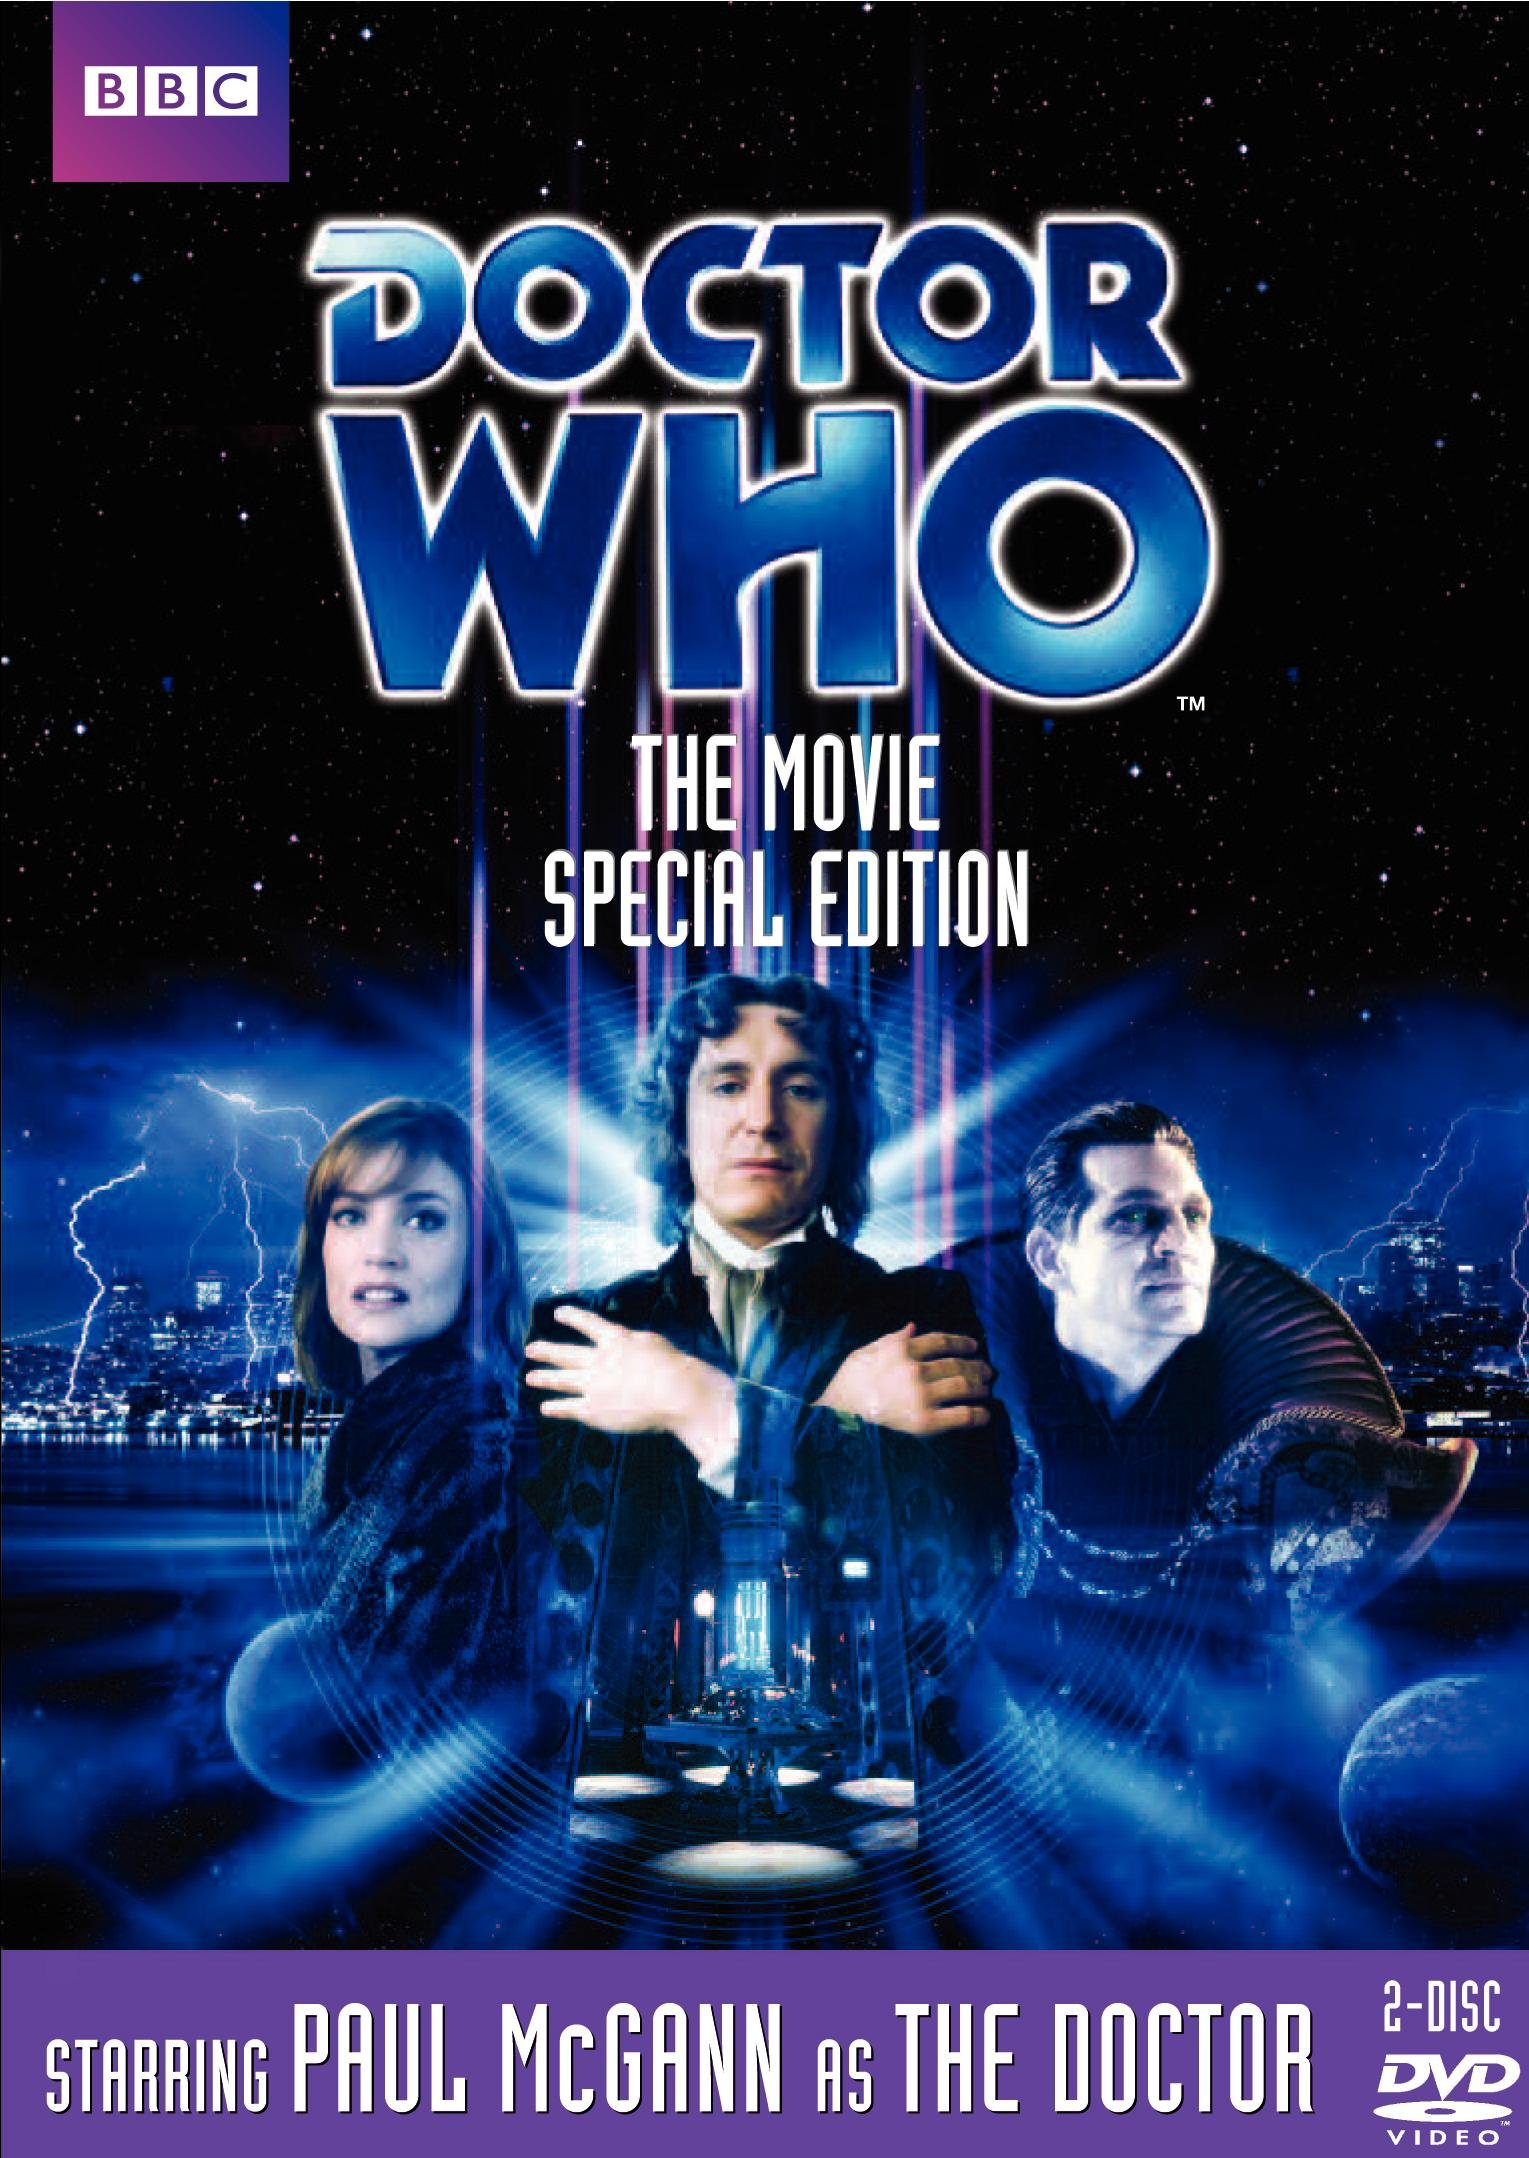 Doctor Who: The Movie (Special Edition) by BBC Home Entertainment